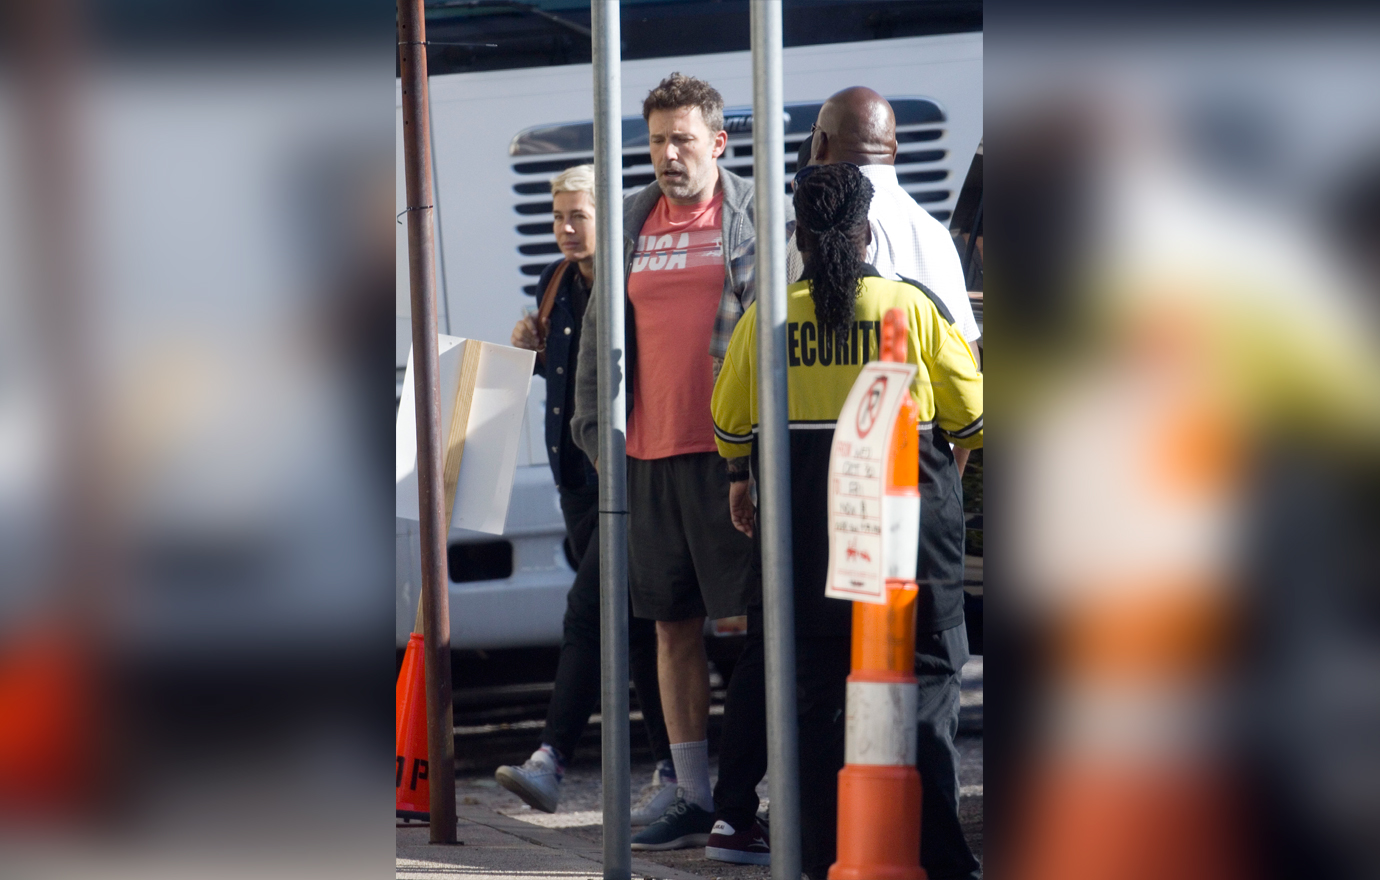 EXCLUSIVE: Ben Affleck shows off his patriotic spirit as he is seen wearing a USA t-shirt on Veteran's Day